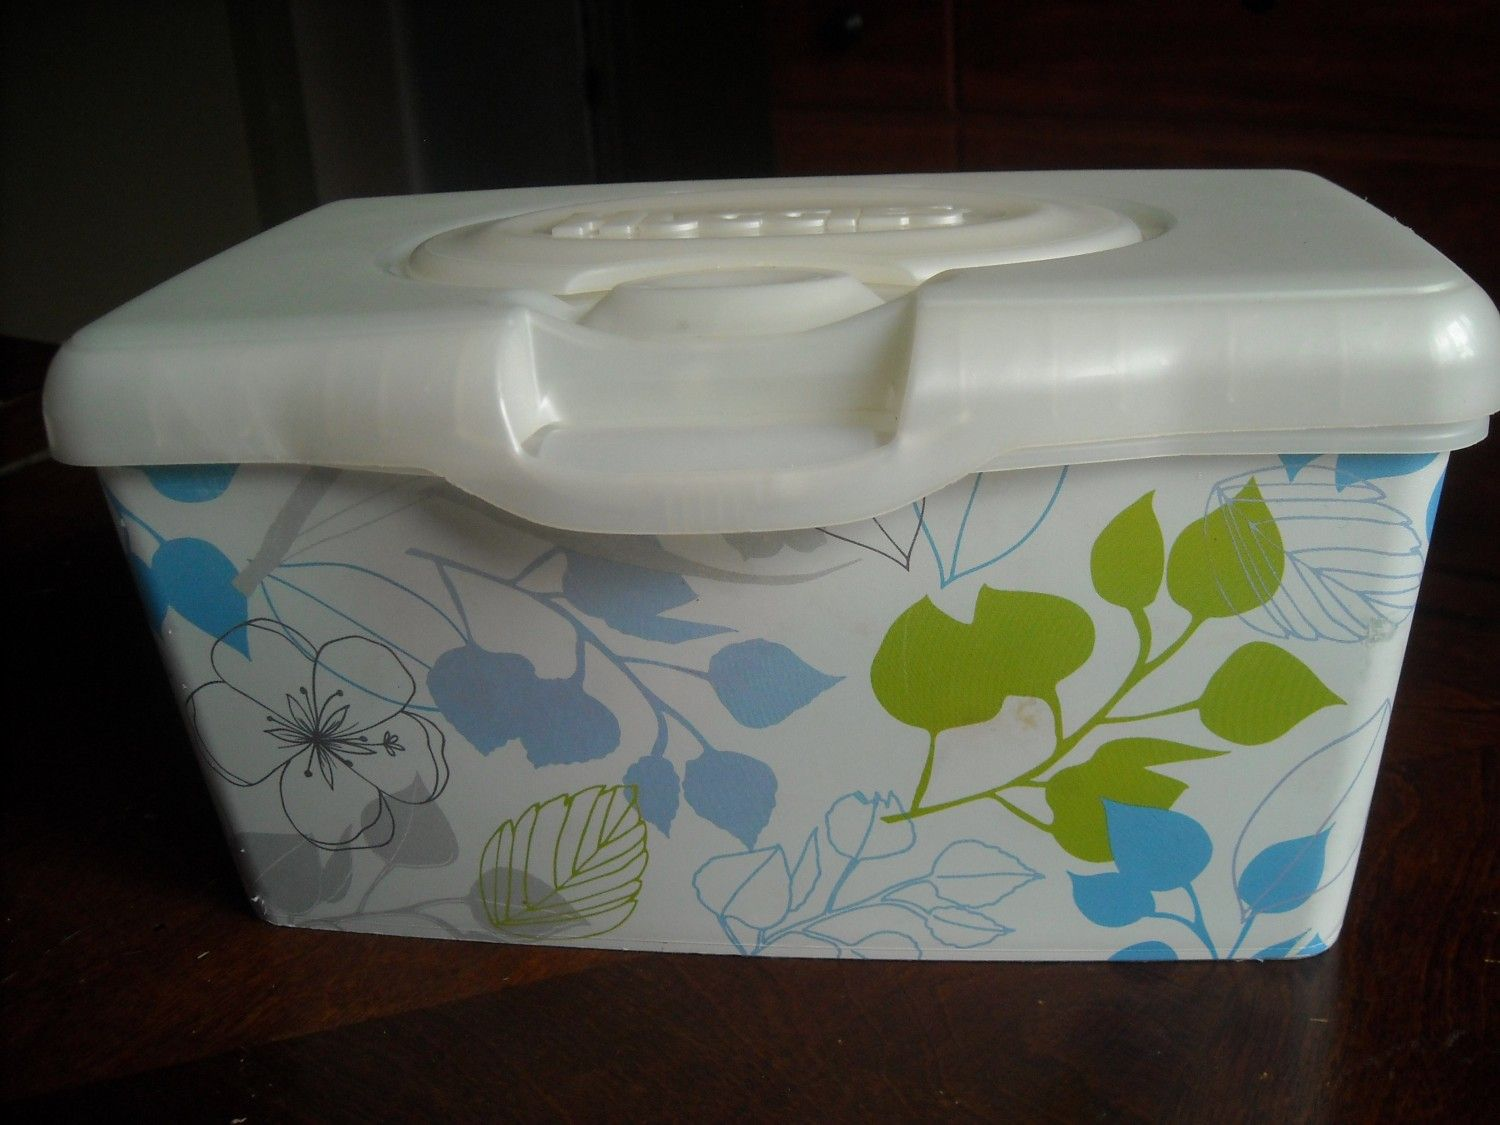 35 Smart Ways To Reuse Baby Wipes Containers Baby Wipes Container Wipes Container